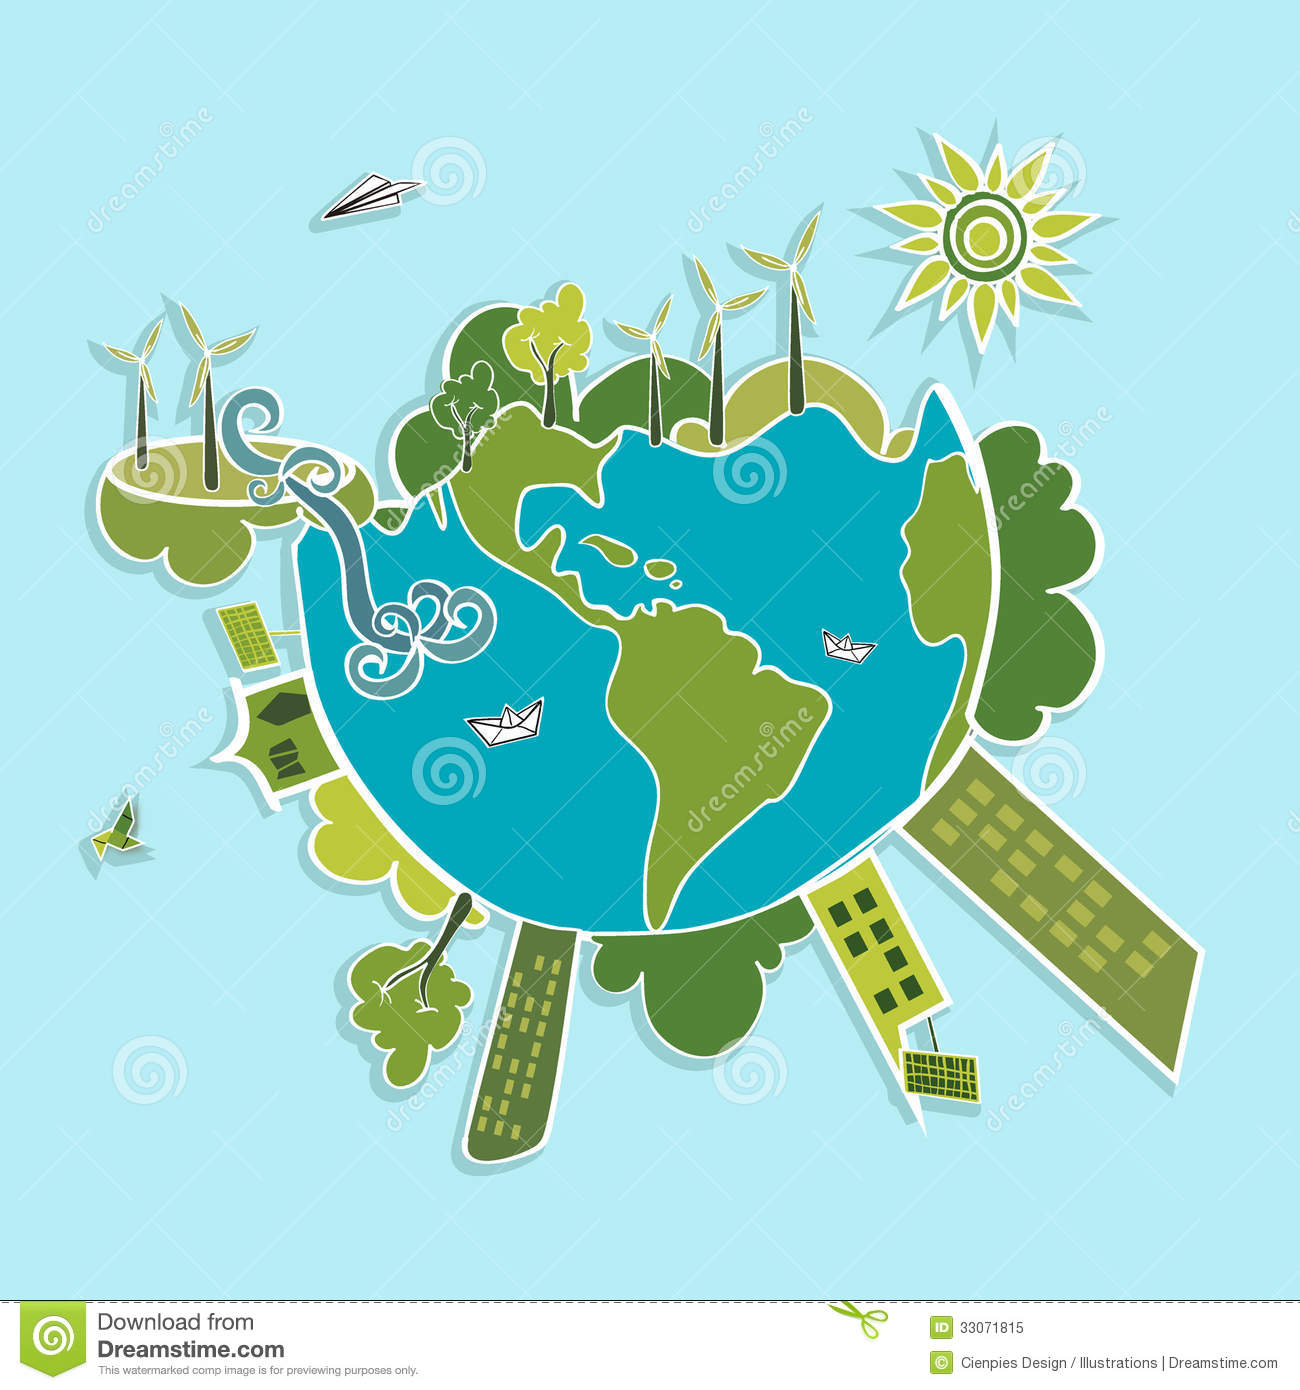 green world ecologic elements eco global planet earth trees continents wind turbines sun illustration vector layered easy 33071815